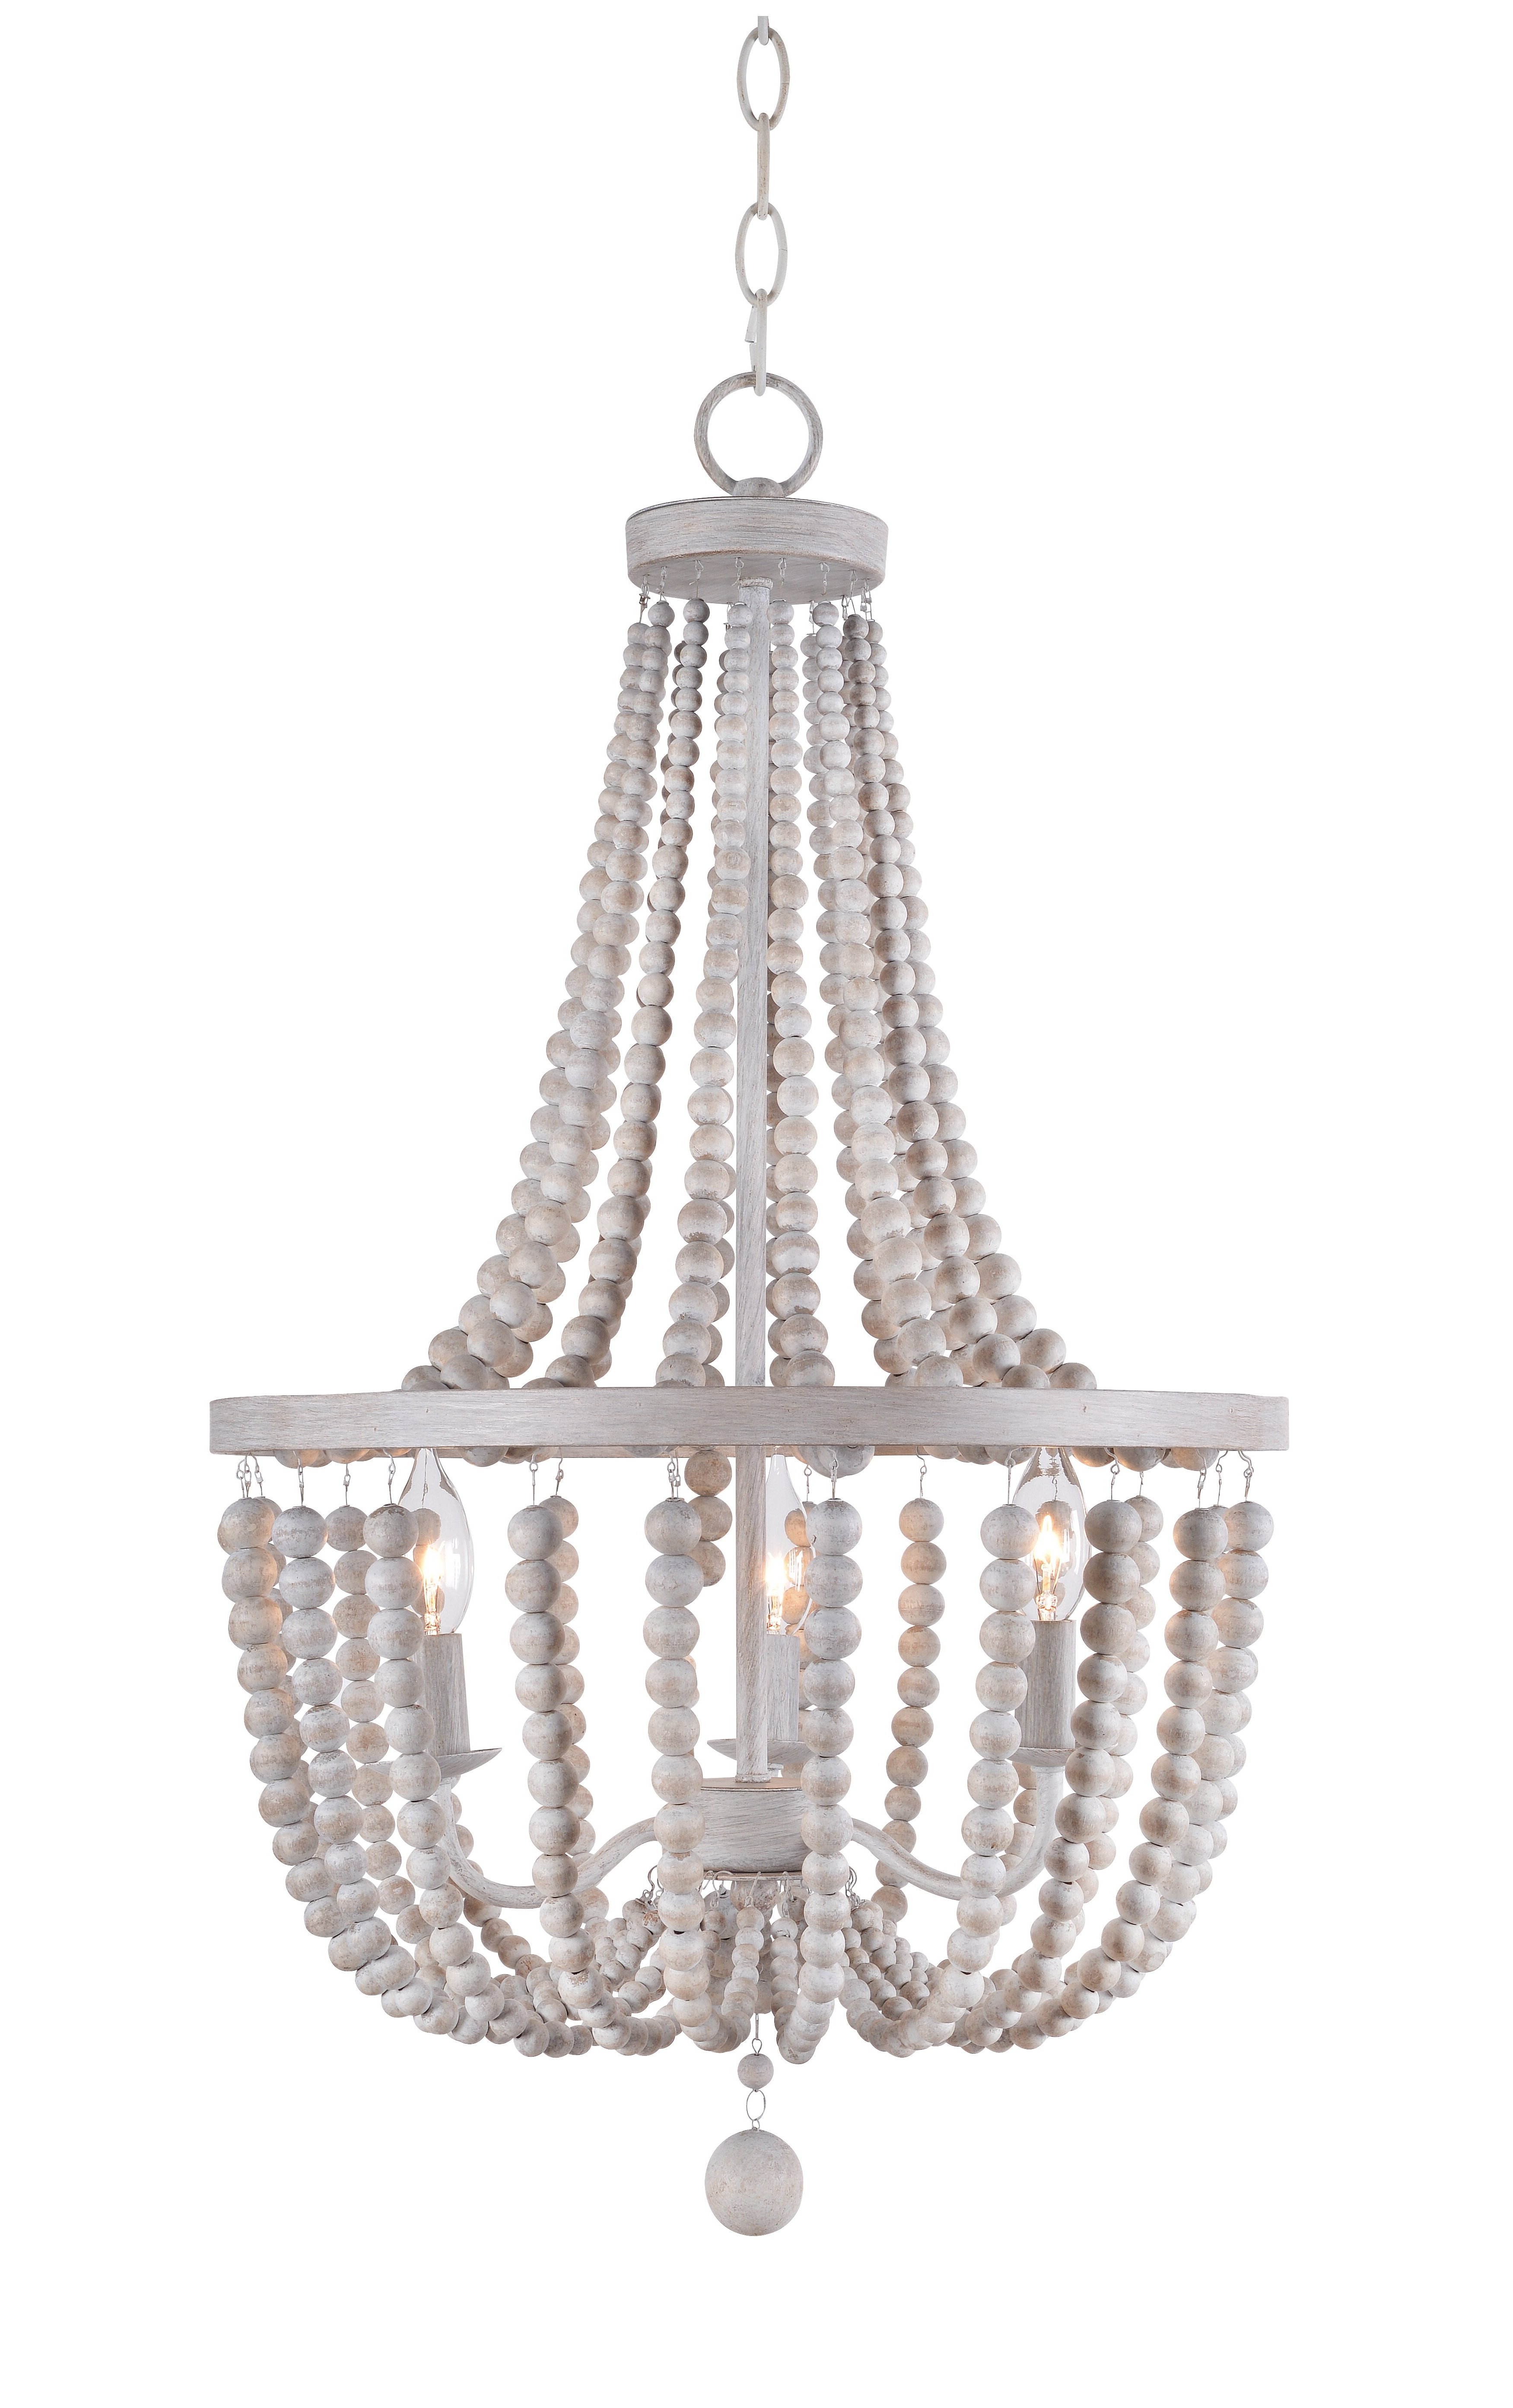 Wayfair With Duron 5 Light Empire Chandeliers (View 16 of 20)